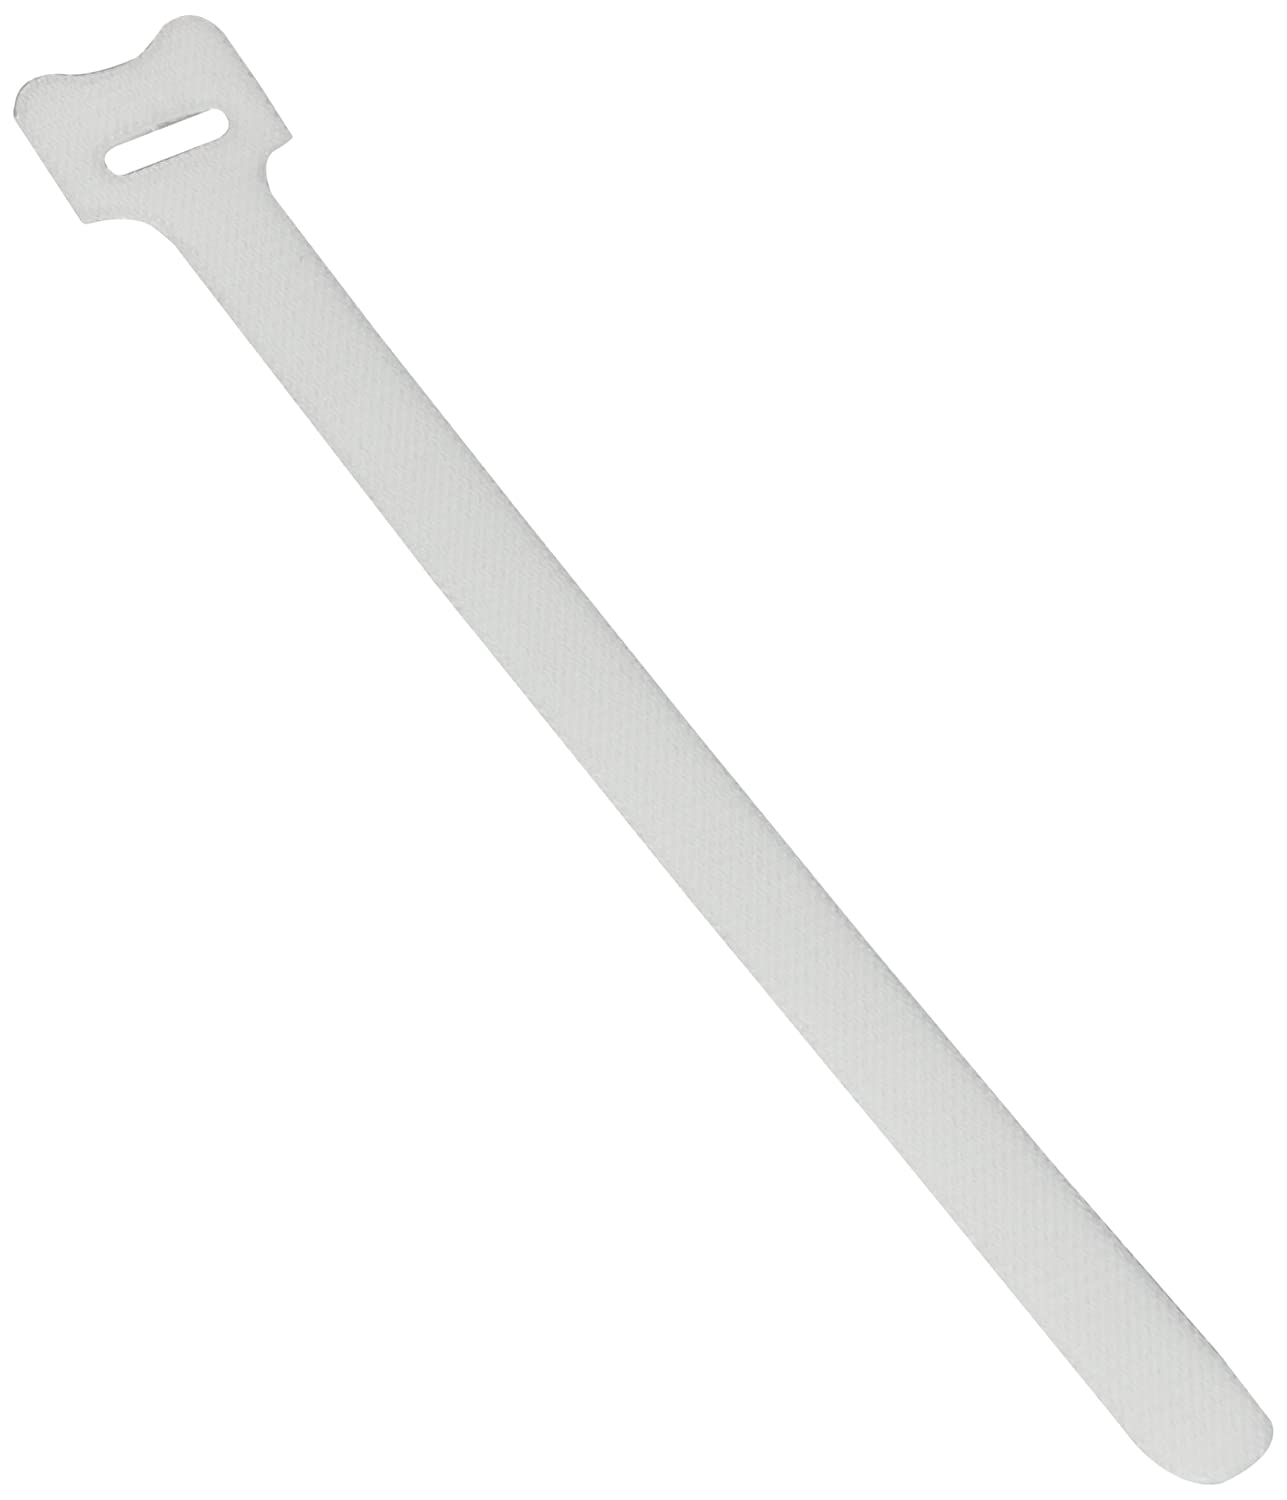 BlueDot Trading Hook Loop Fastener Cable Tie .5x8 White 30 Pack